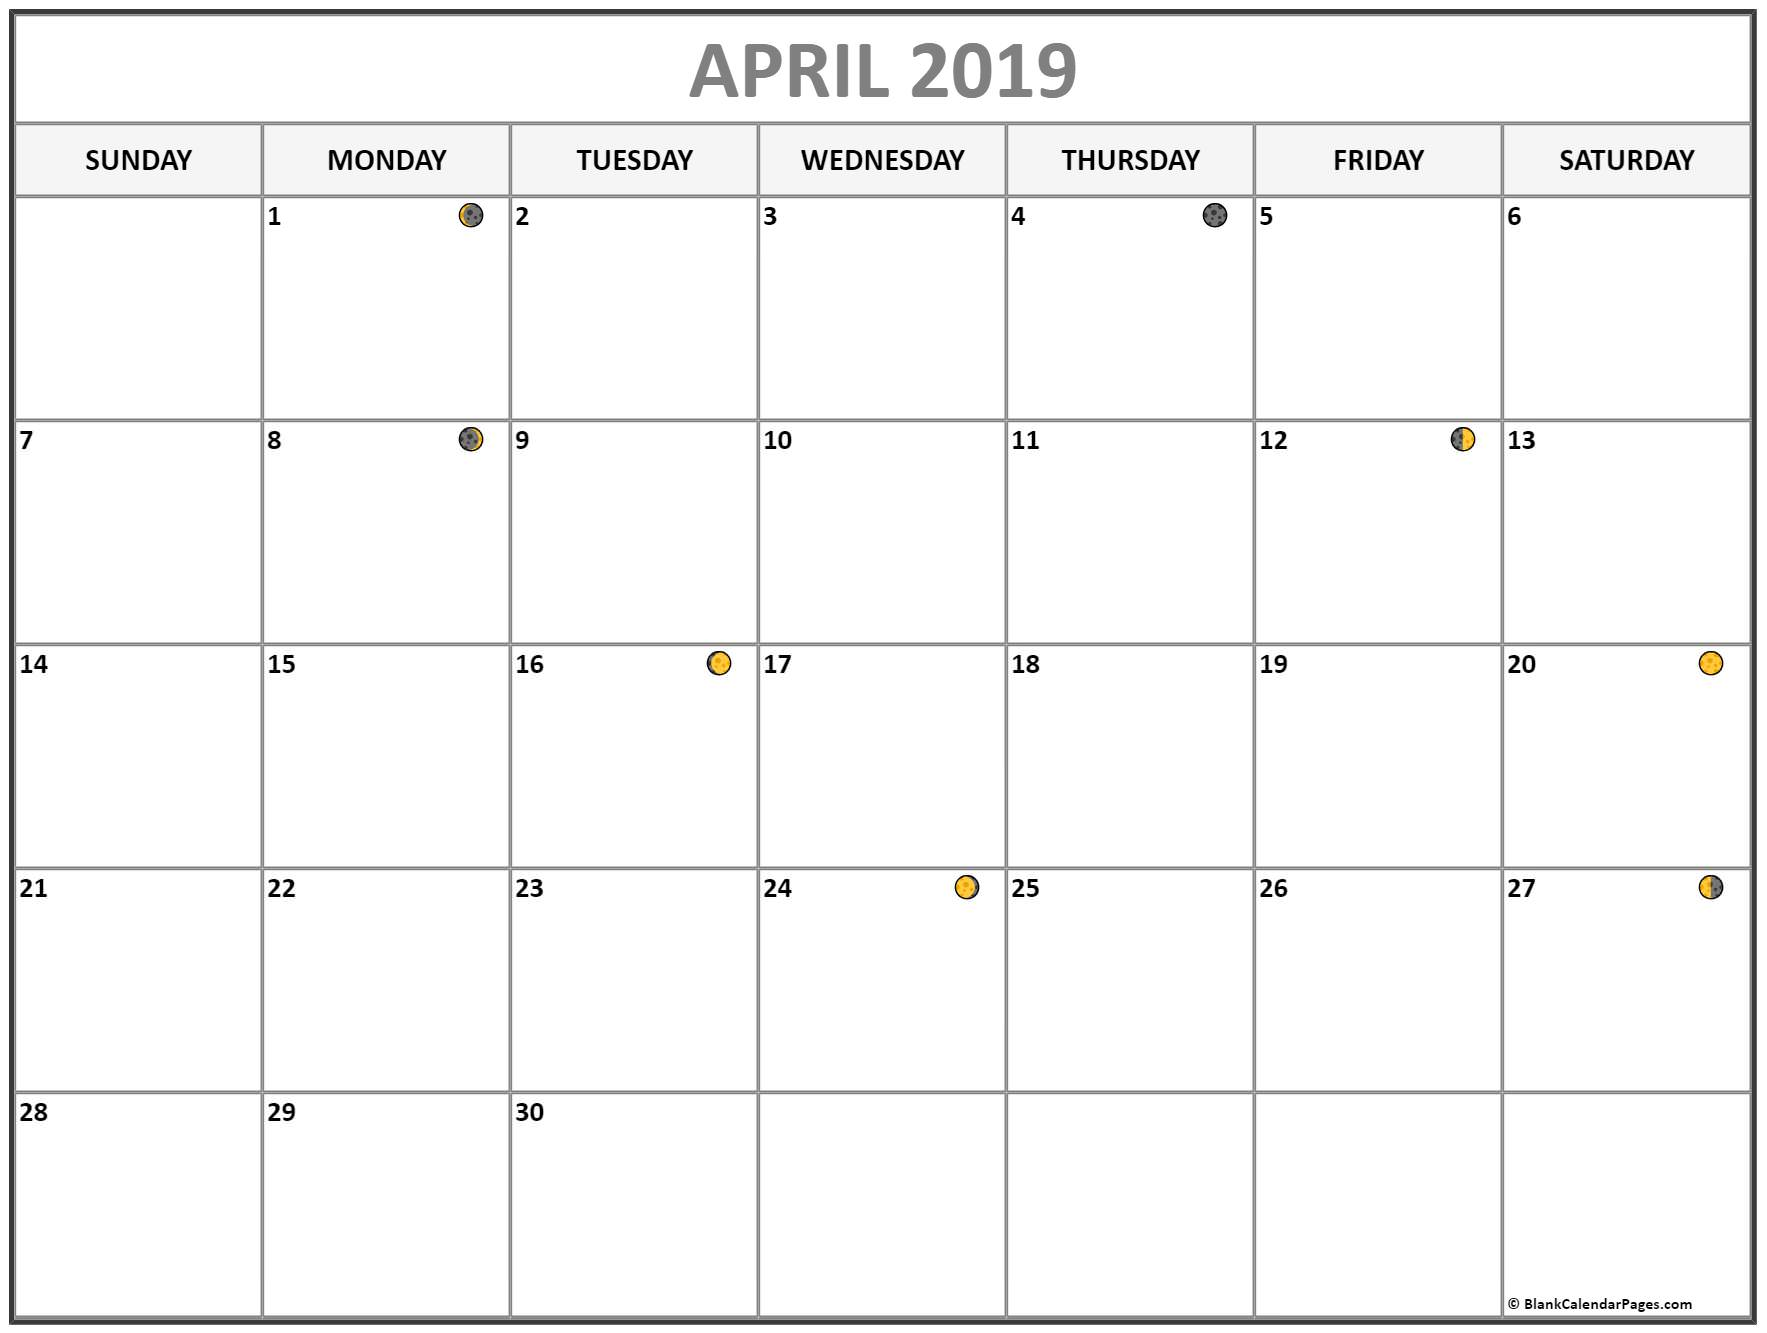 April 2019 Moon Phases Calendar